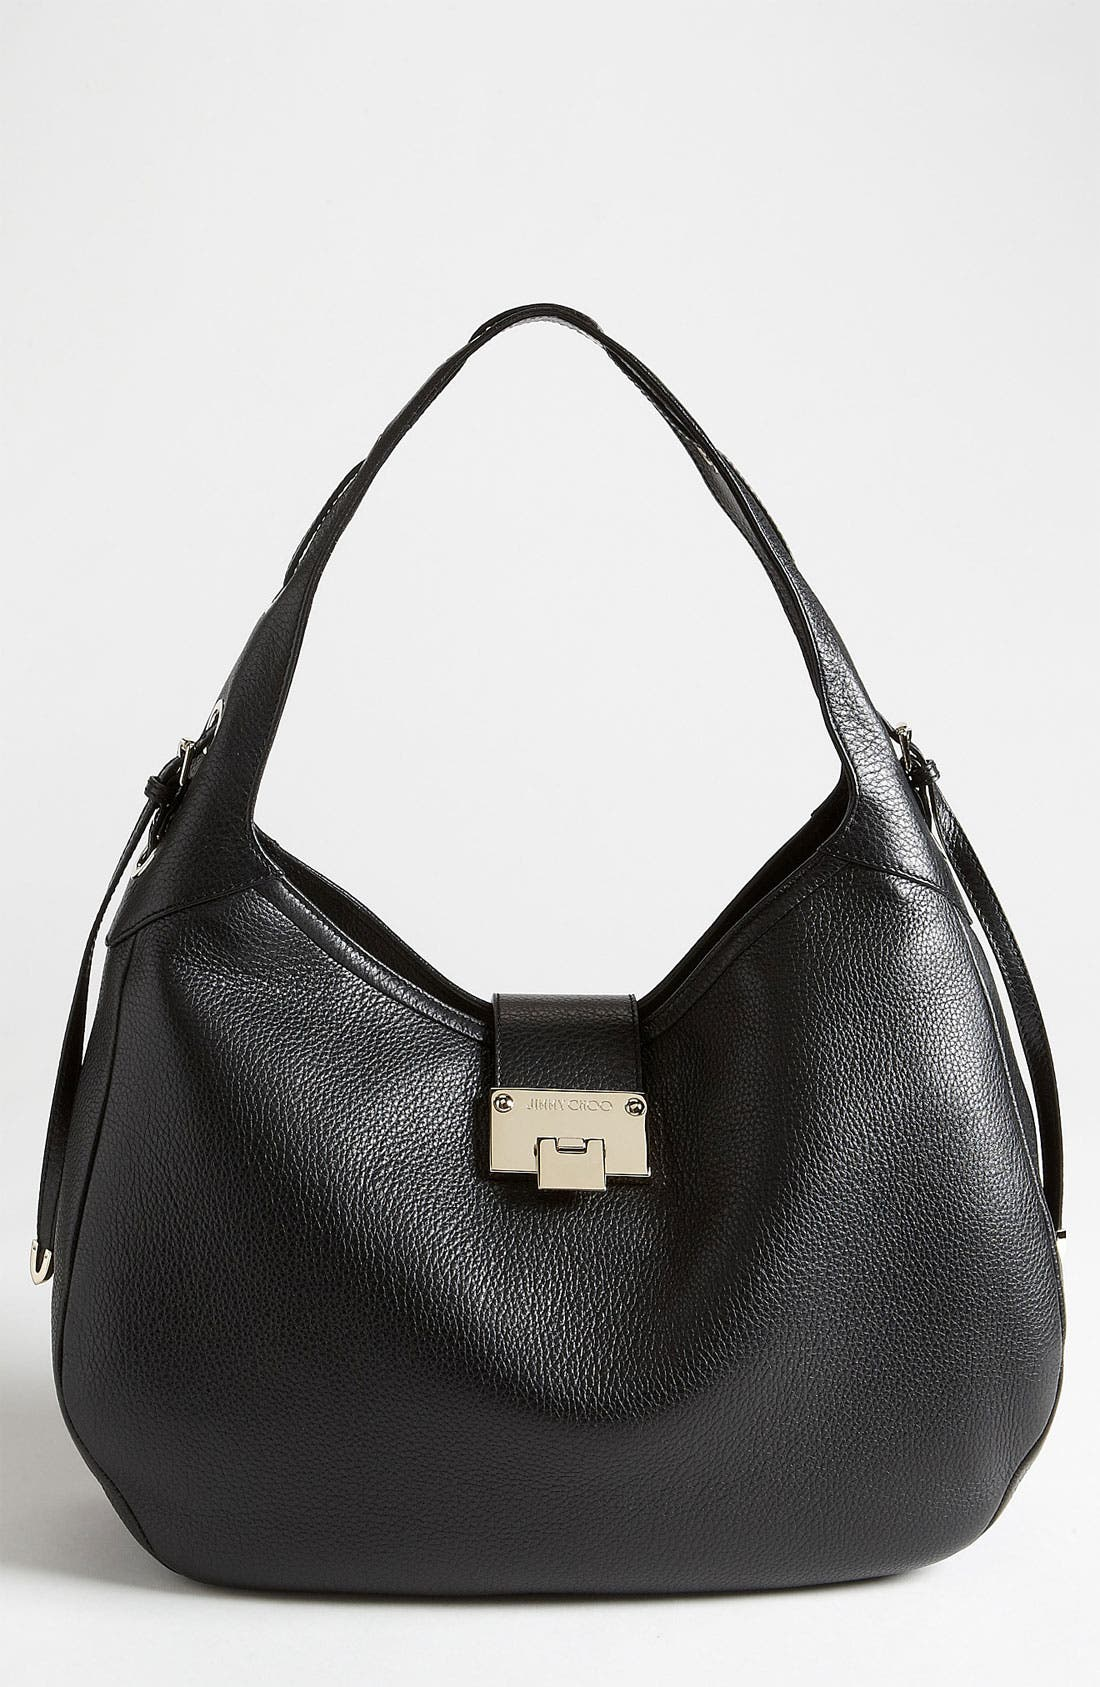 Alternate Image 1 Selected - Jimmy Choo 'Relax' Leather Hobo